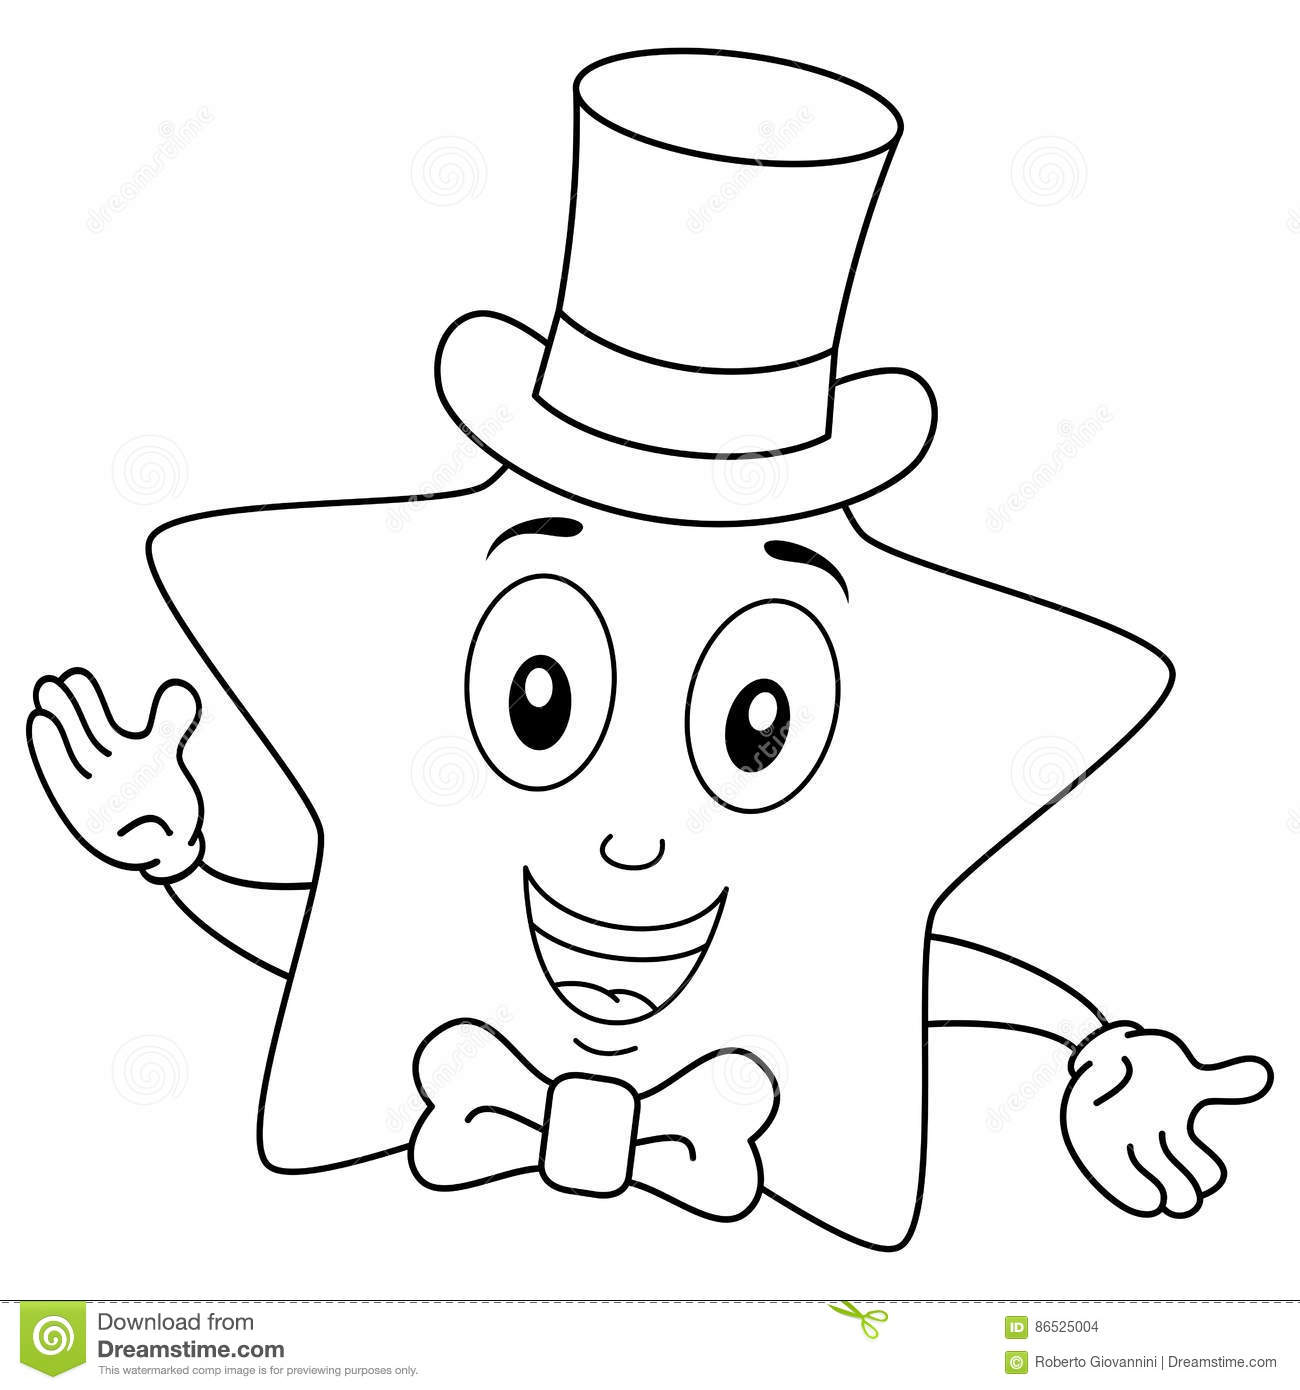 St Patricks Day Coloring Pages - Irish tophat and Shamrocks | St ... | 1390x1300